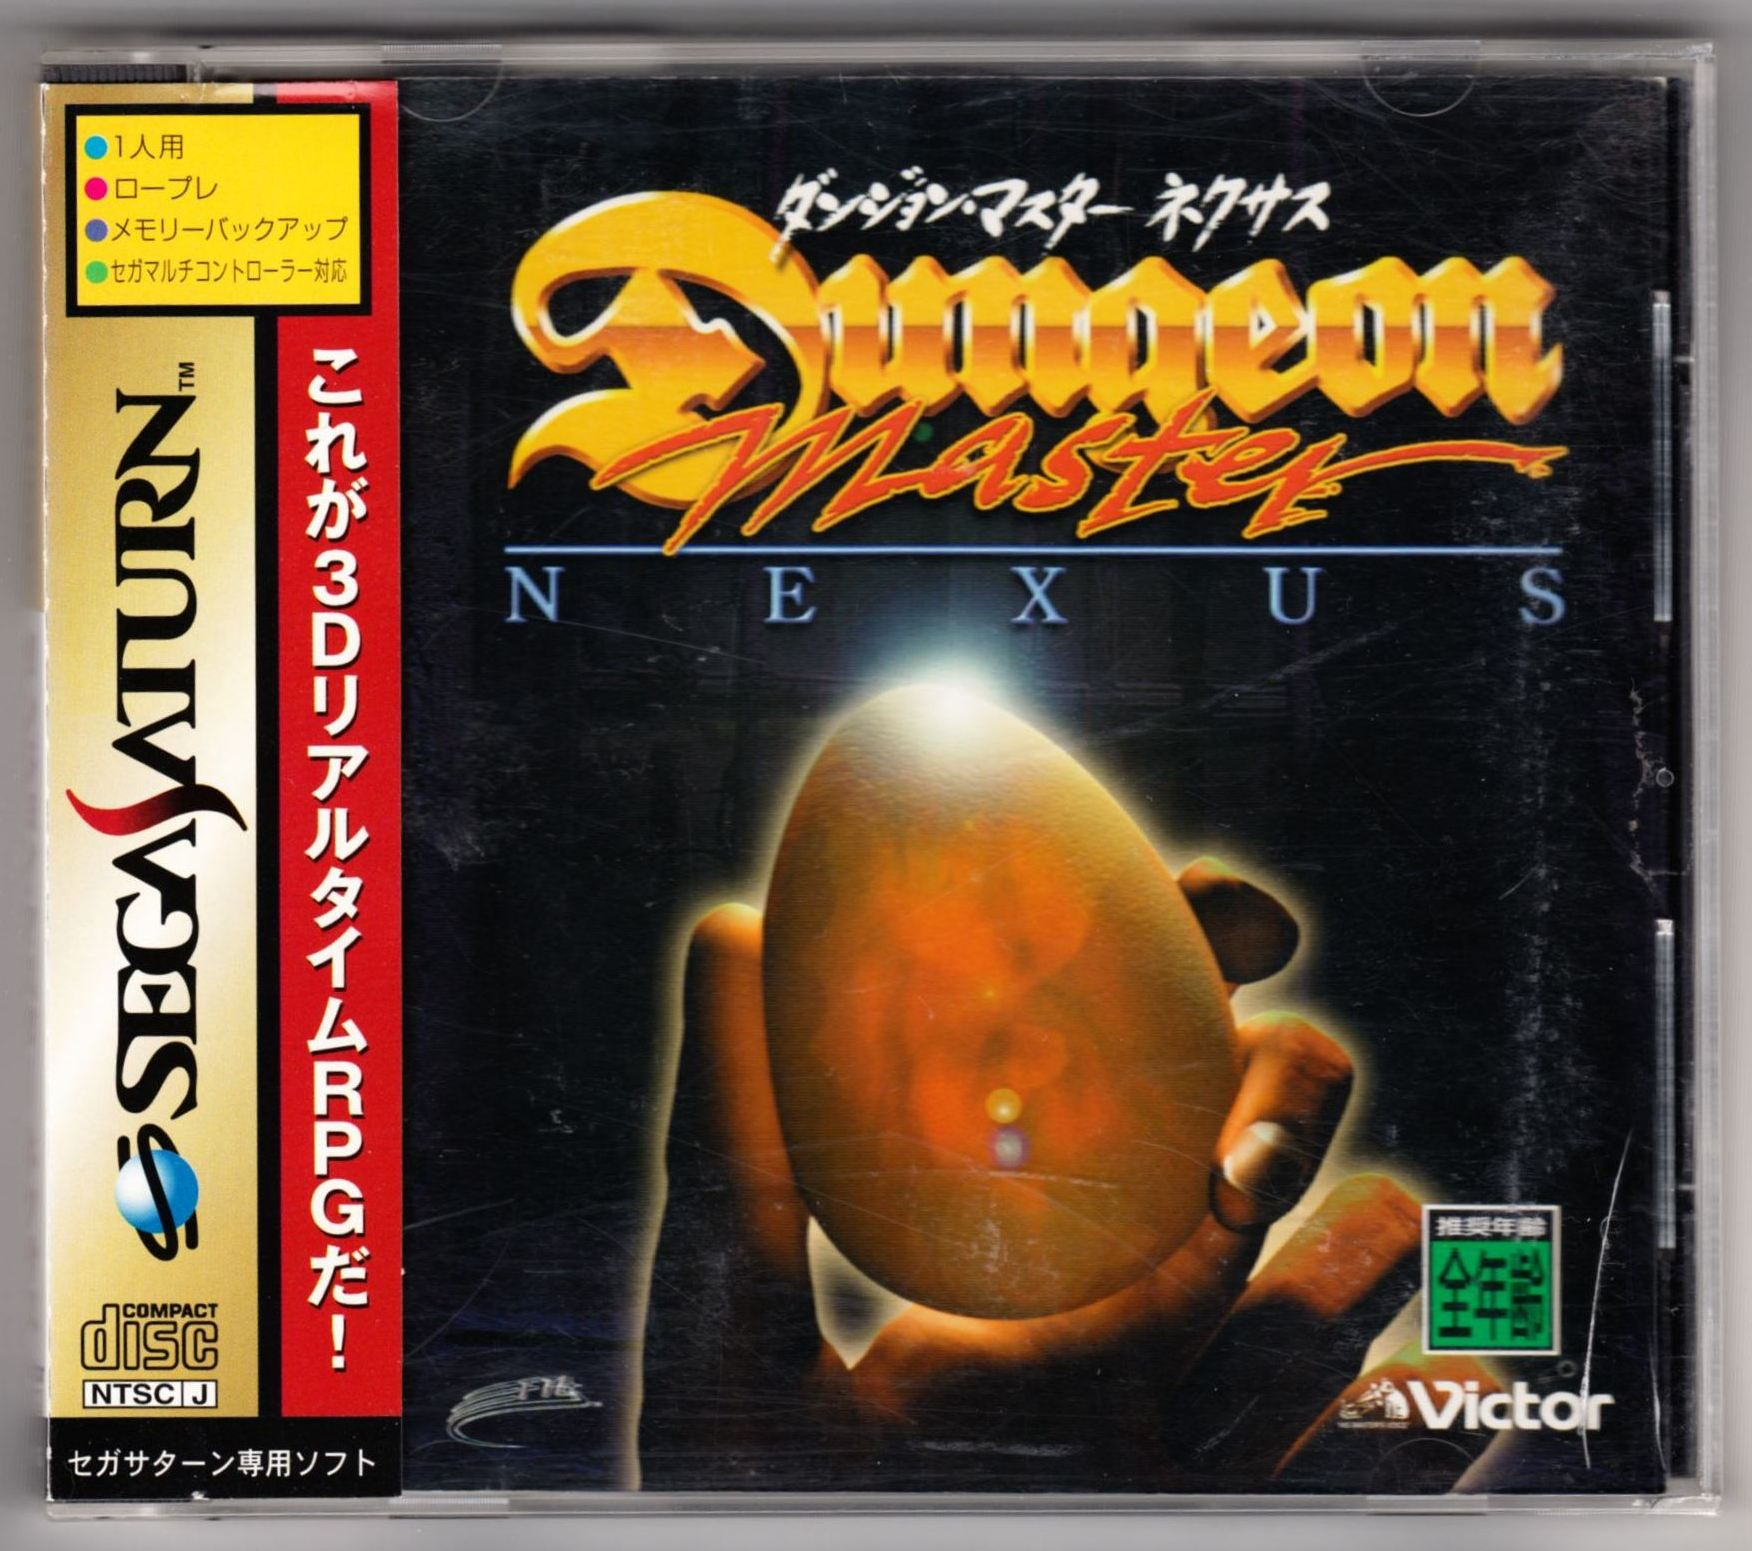 Game - Dungeon Master Nexus - JP - Sega Saturn - Box - Front - Scan